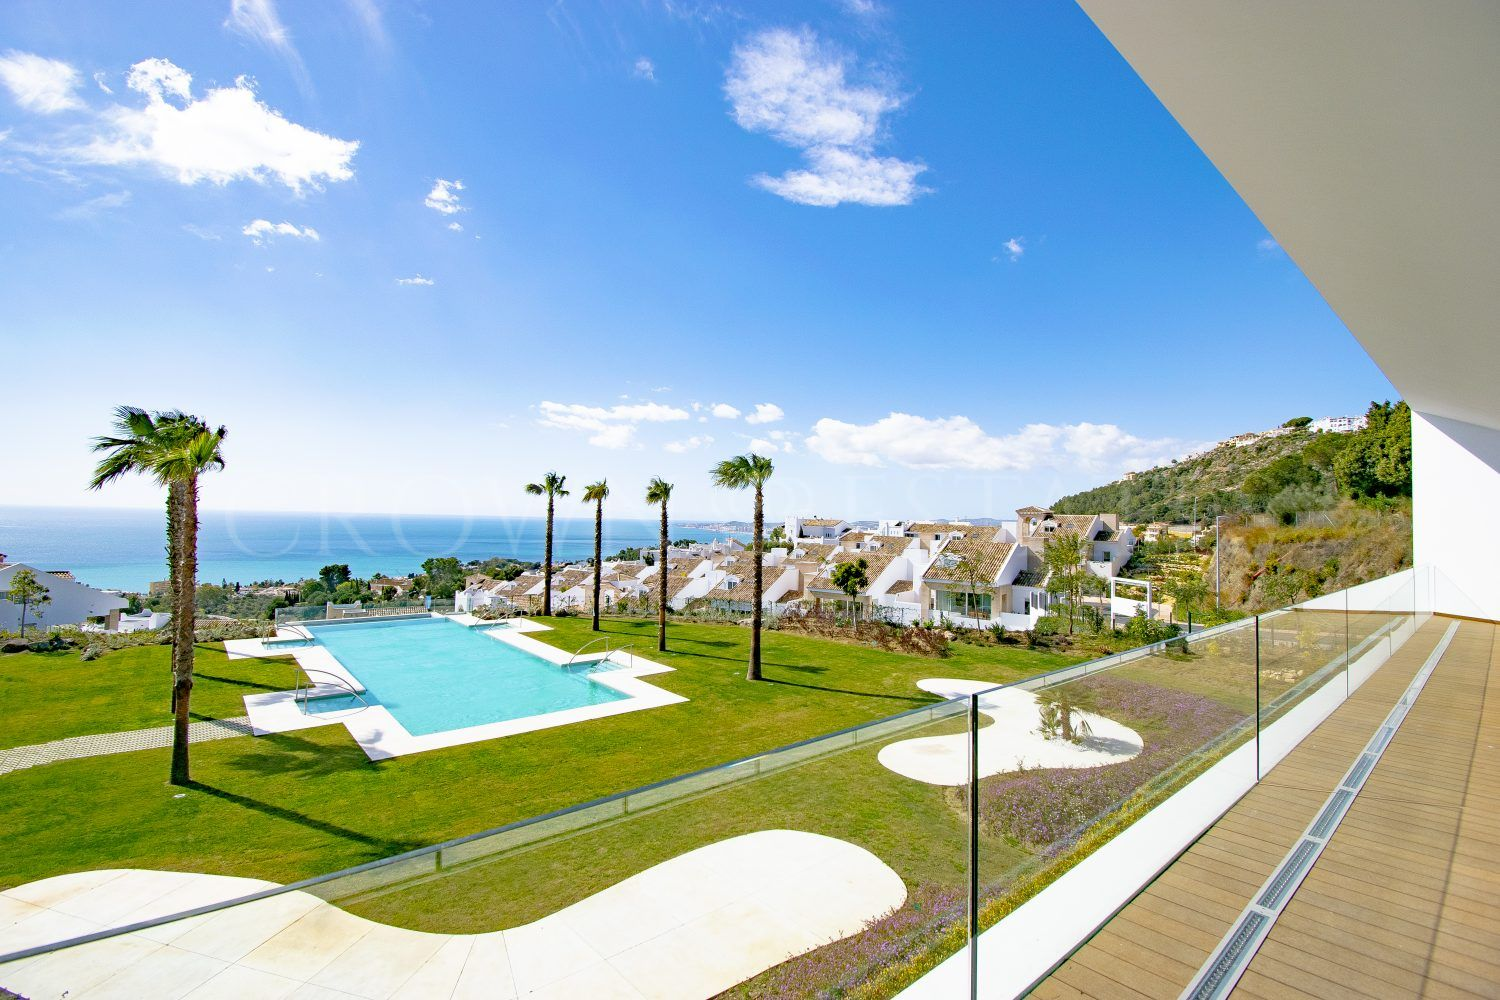 36 exclusive villas in the heart of Benalmadena, within the natural park ofTorremuelle and privileged views to the Mediterranean Sea and its coast.